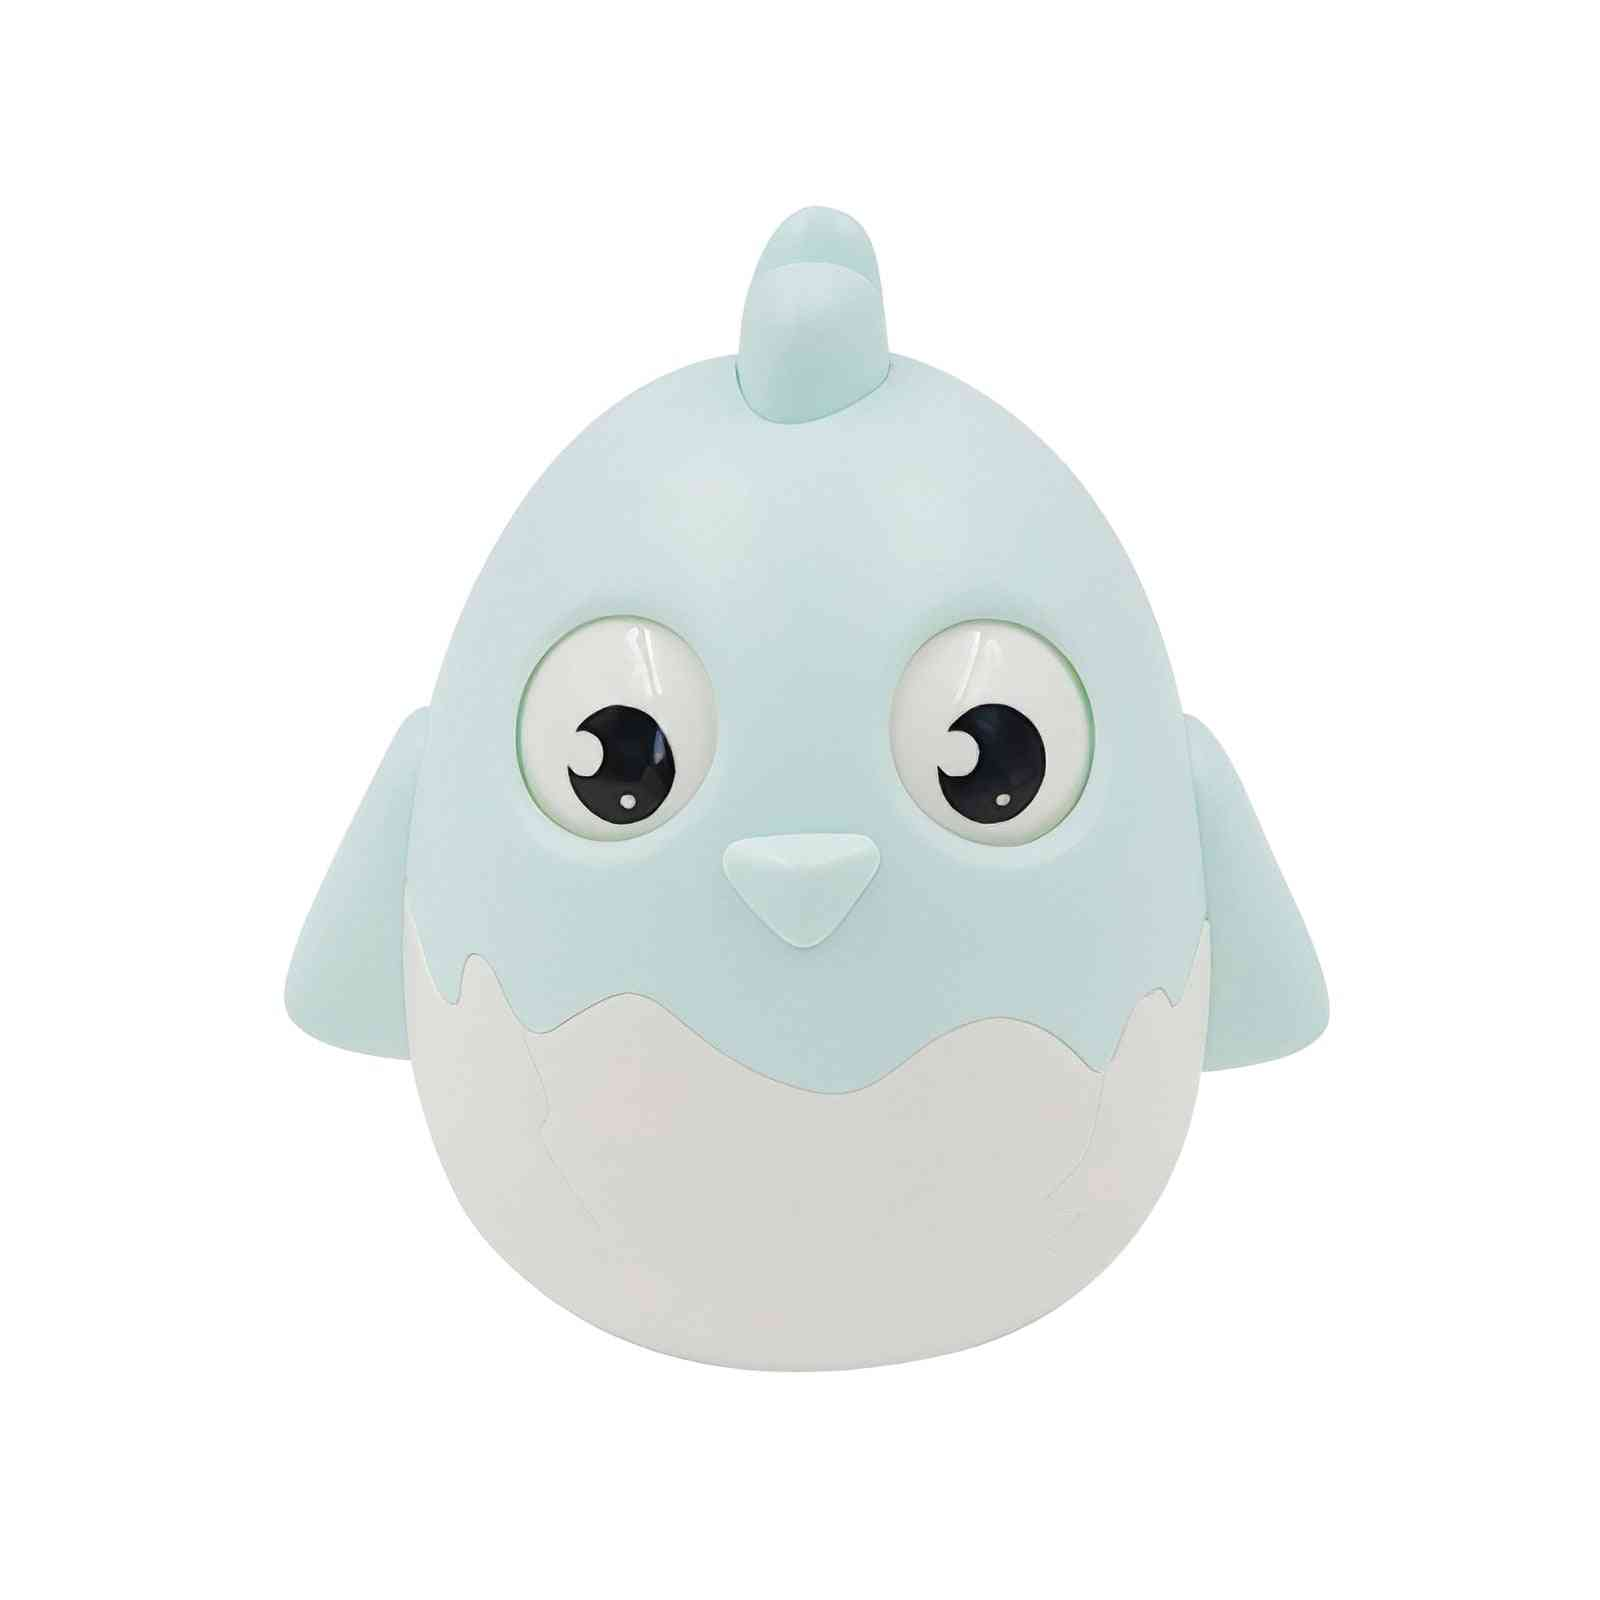 Baby Early Learning Crisp Ringtone Tumbler's Anti-fall Eyes Moveable Cute Baby Chicken Tumbler